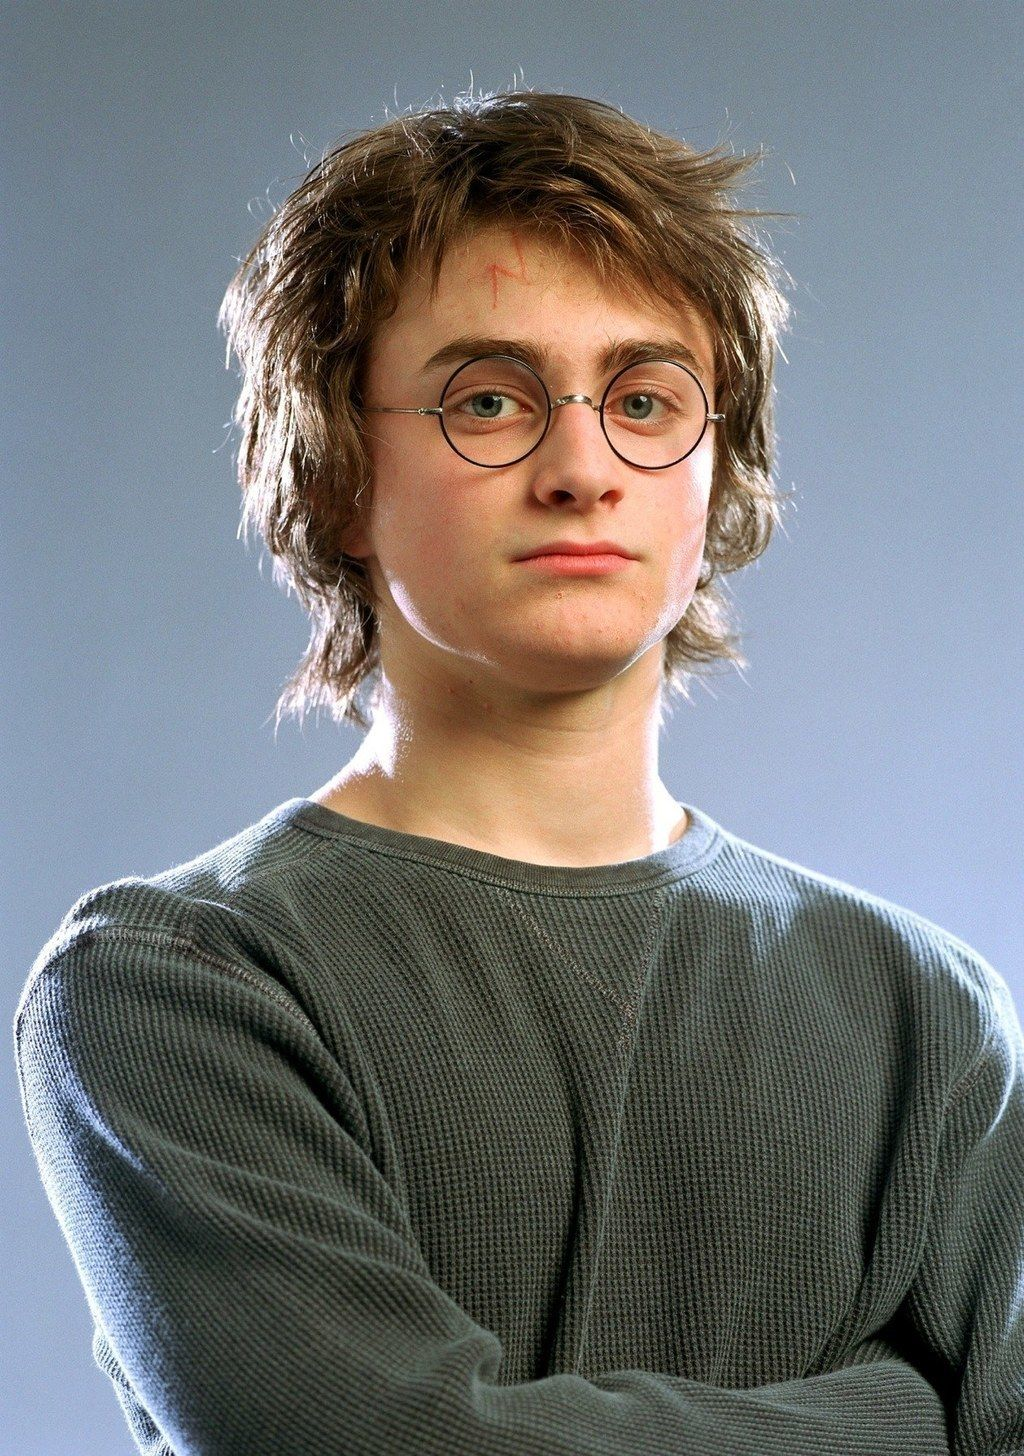 Daniel Radcliffe And Jamie Parker As Harry Potter Harry Potter Goblet Daniel Radcliffe Harry Potter Harry Potter Hairstyles